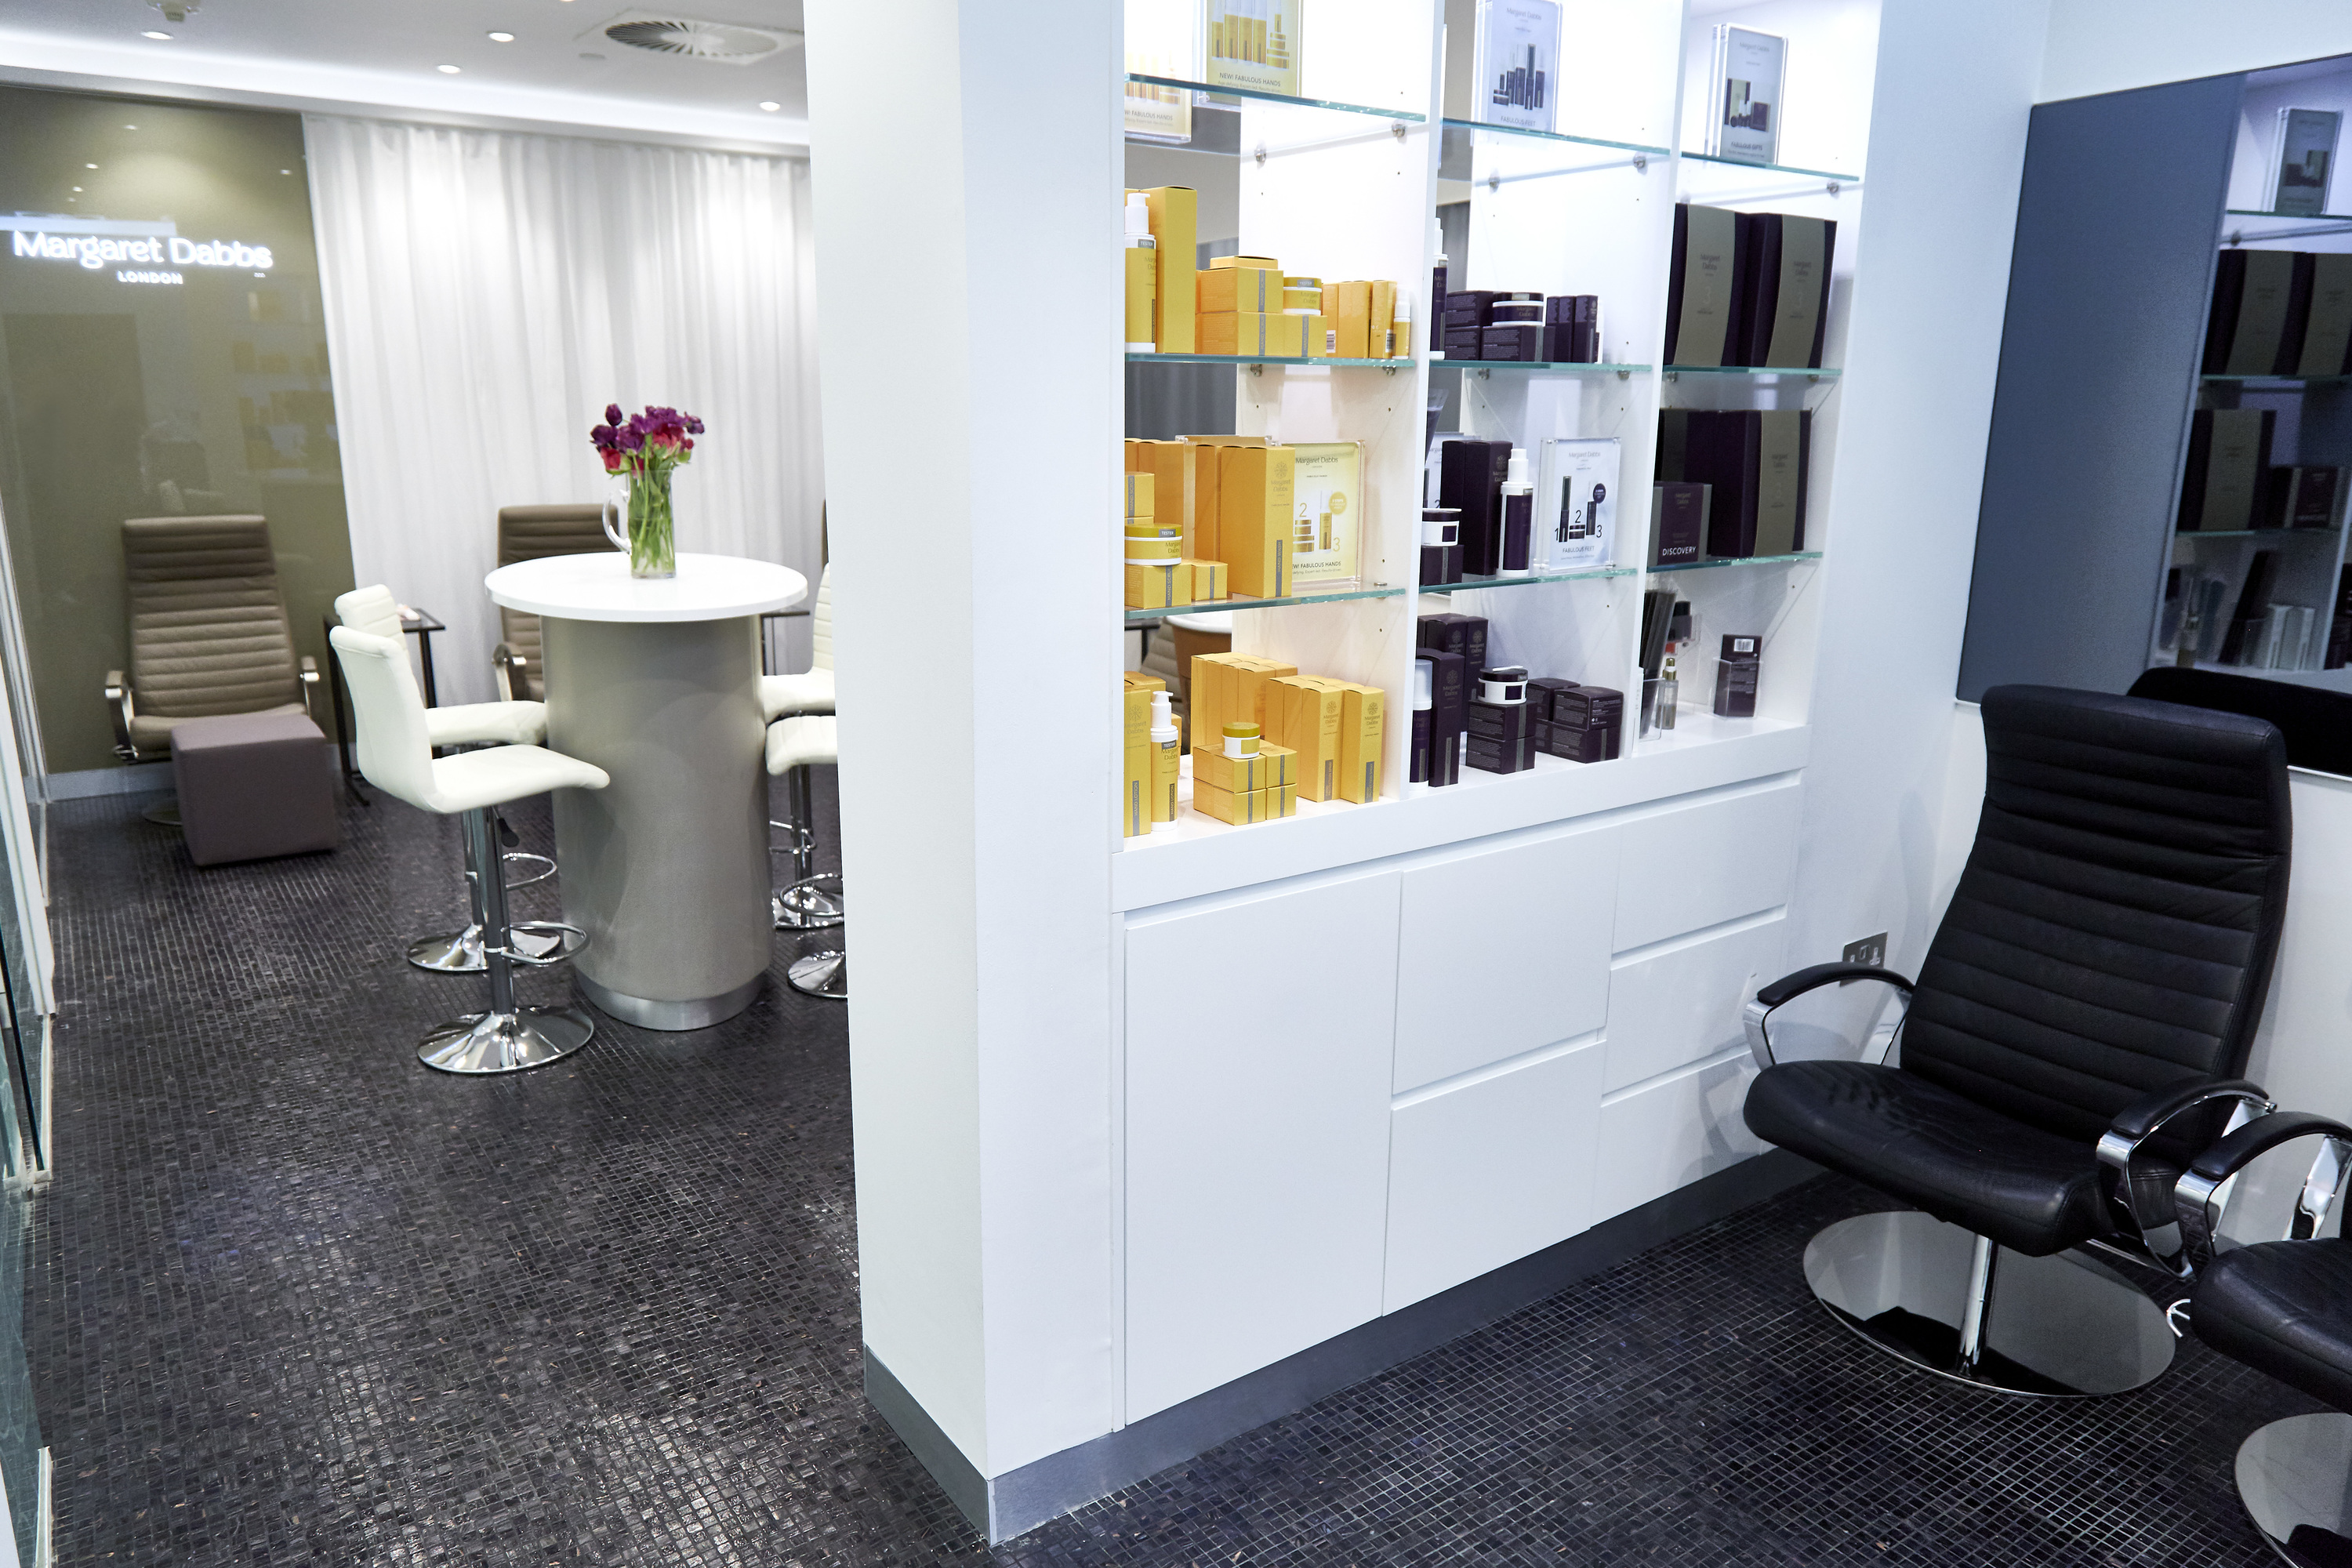 The best pre-holiday beauty treatments in London